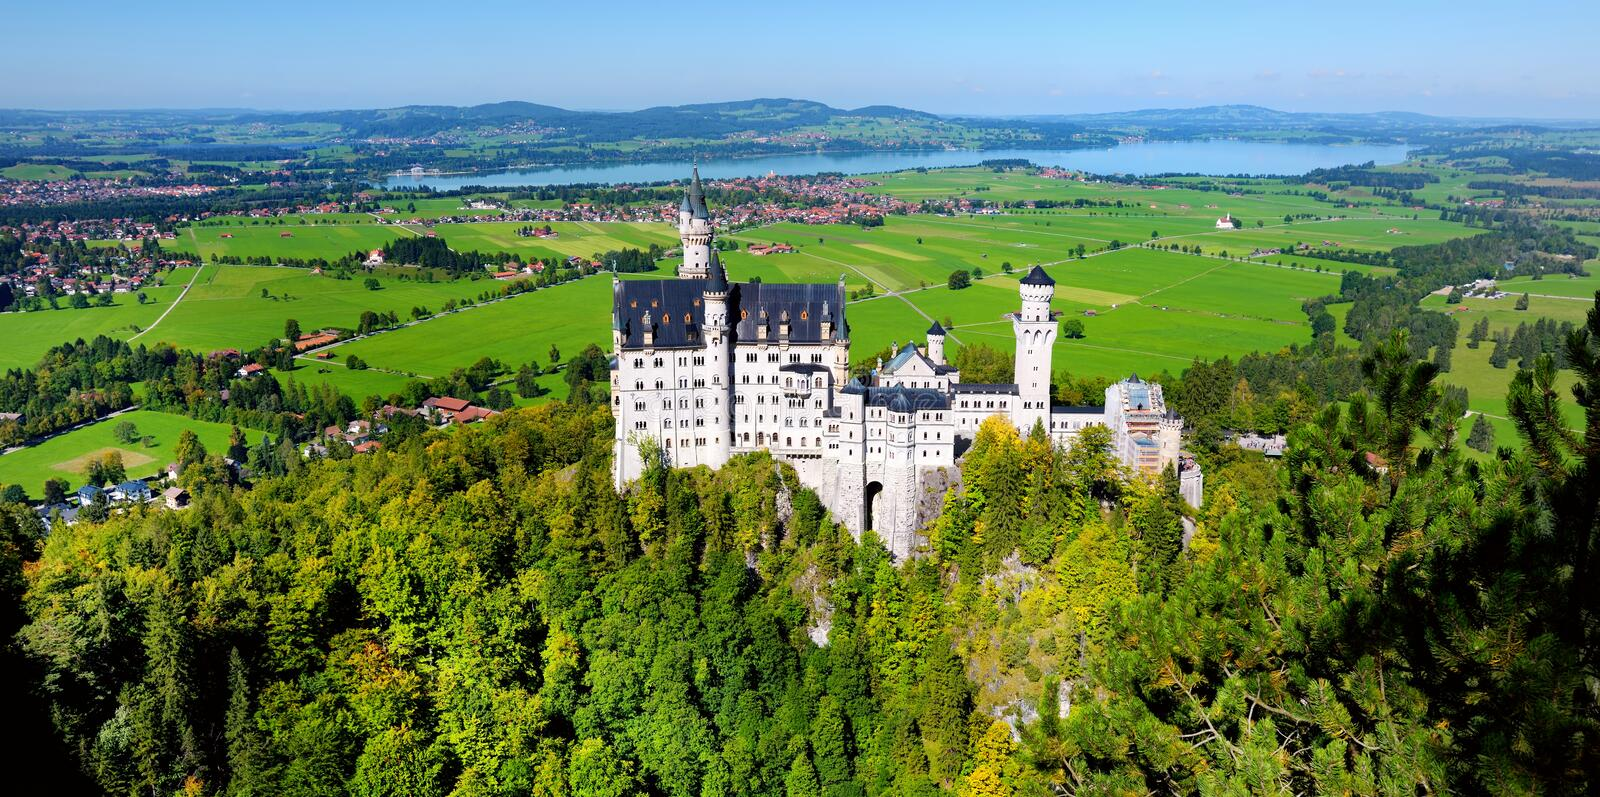 Famous Neuschwanstein Castle, 19th-century Romanesque Revival palace on a rugged hill above the village of Hohenschwangau in south stock image